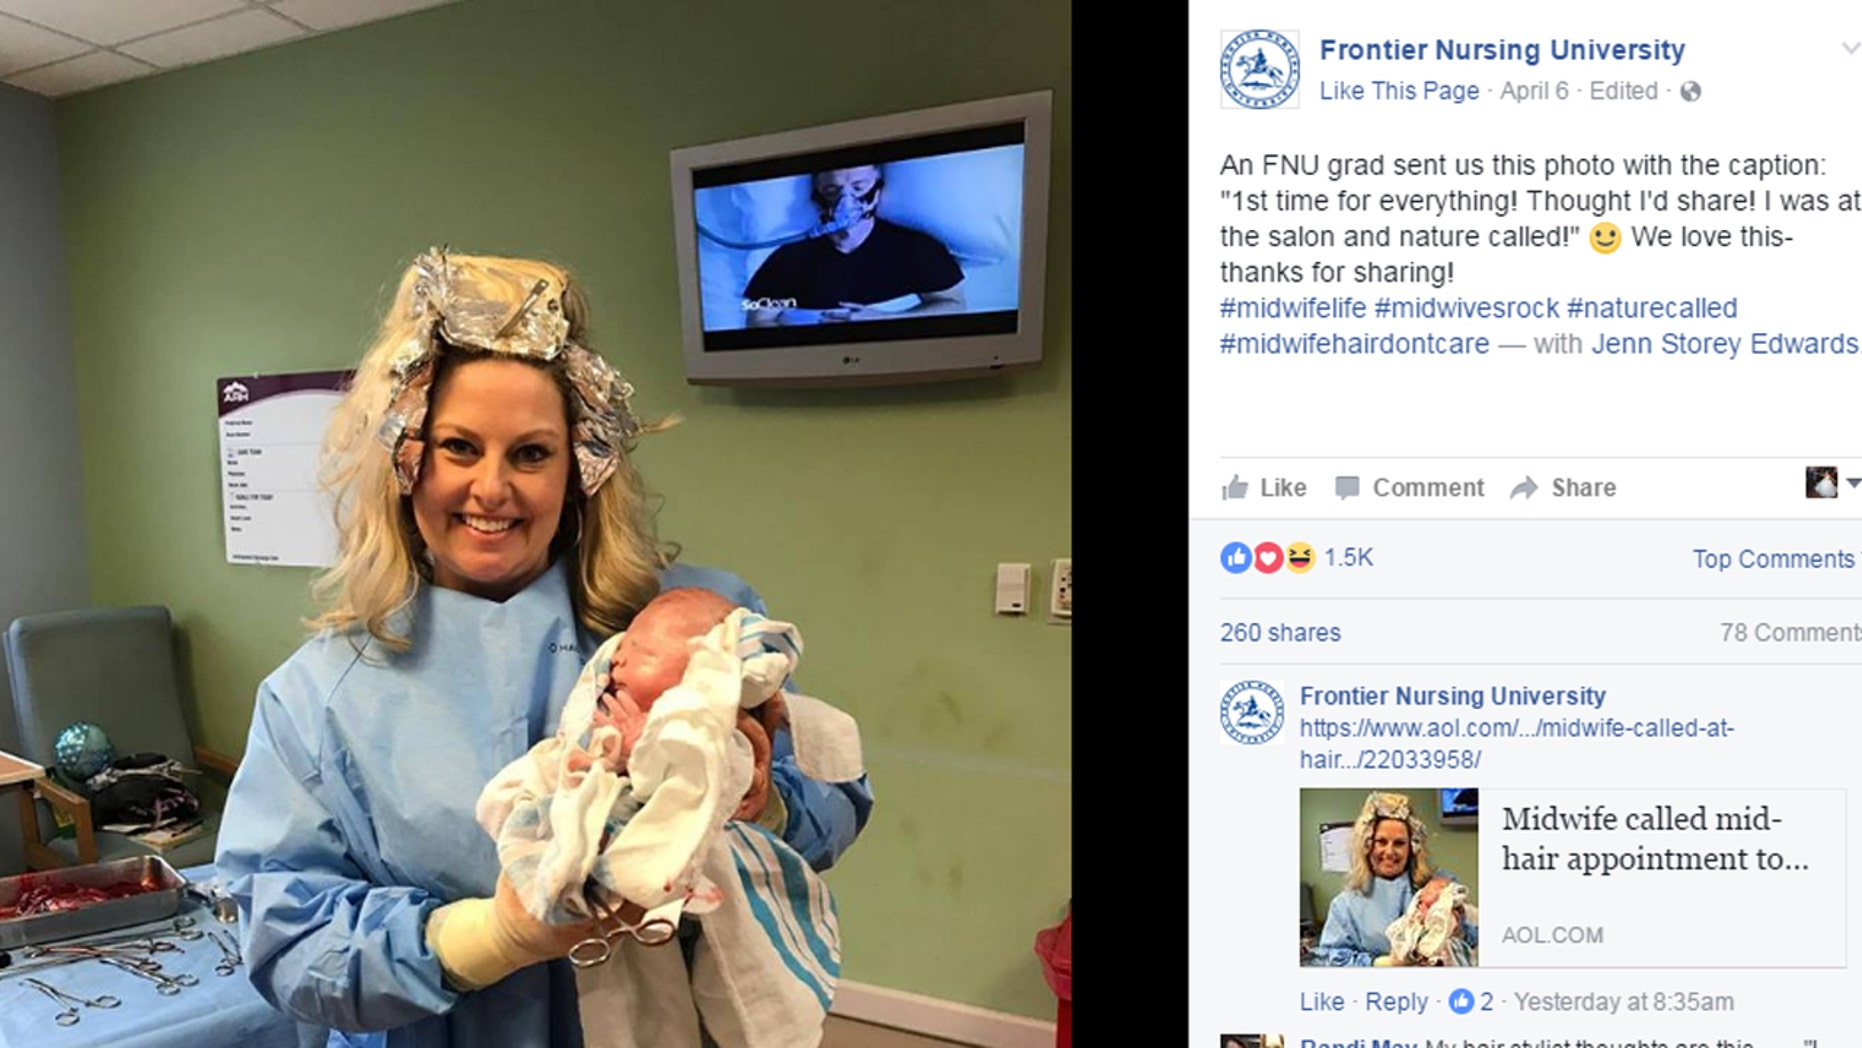 Midwife Carrie Hall was in the middle of getting her hair dyed when a patient went into labor.